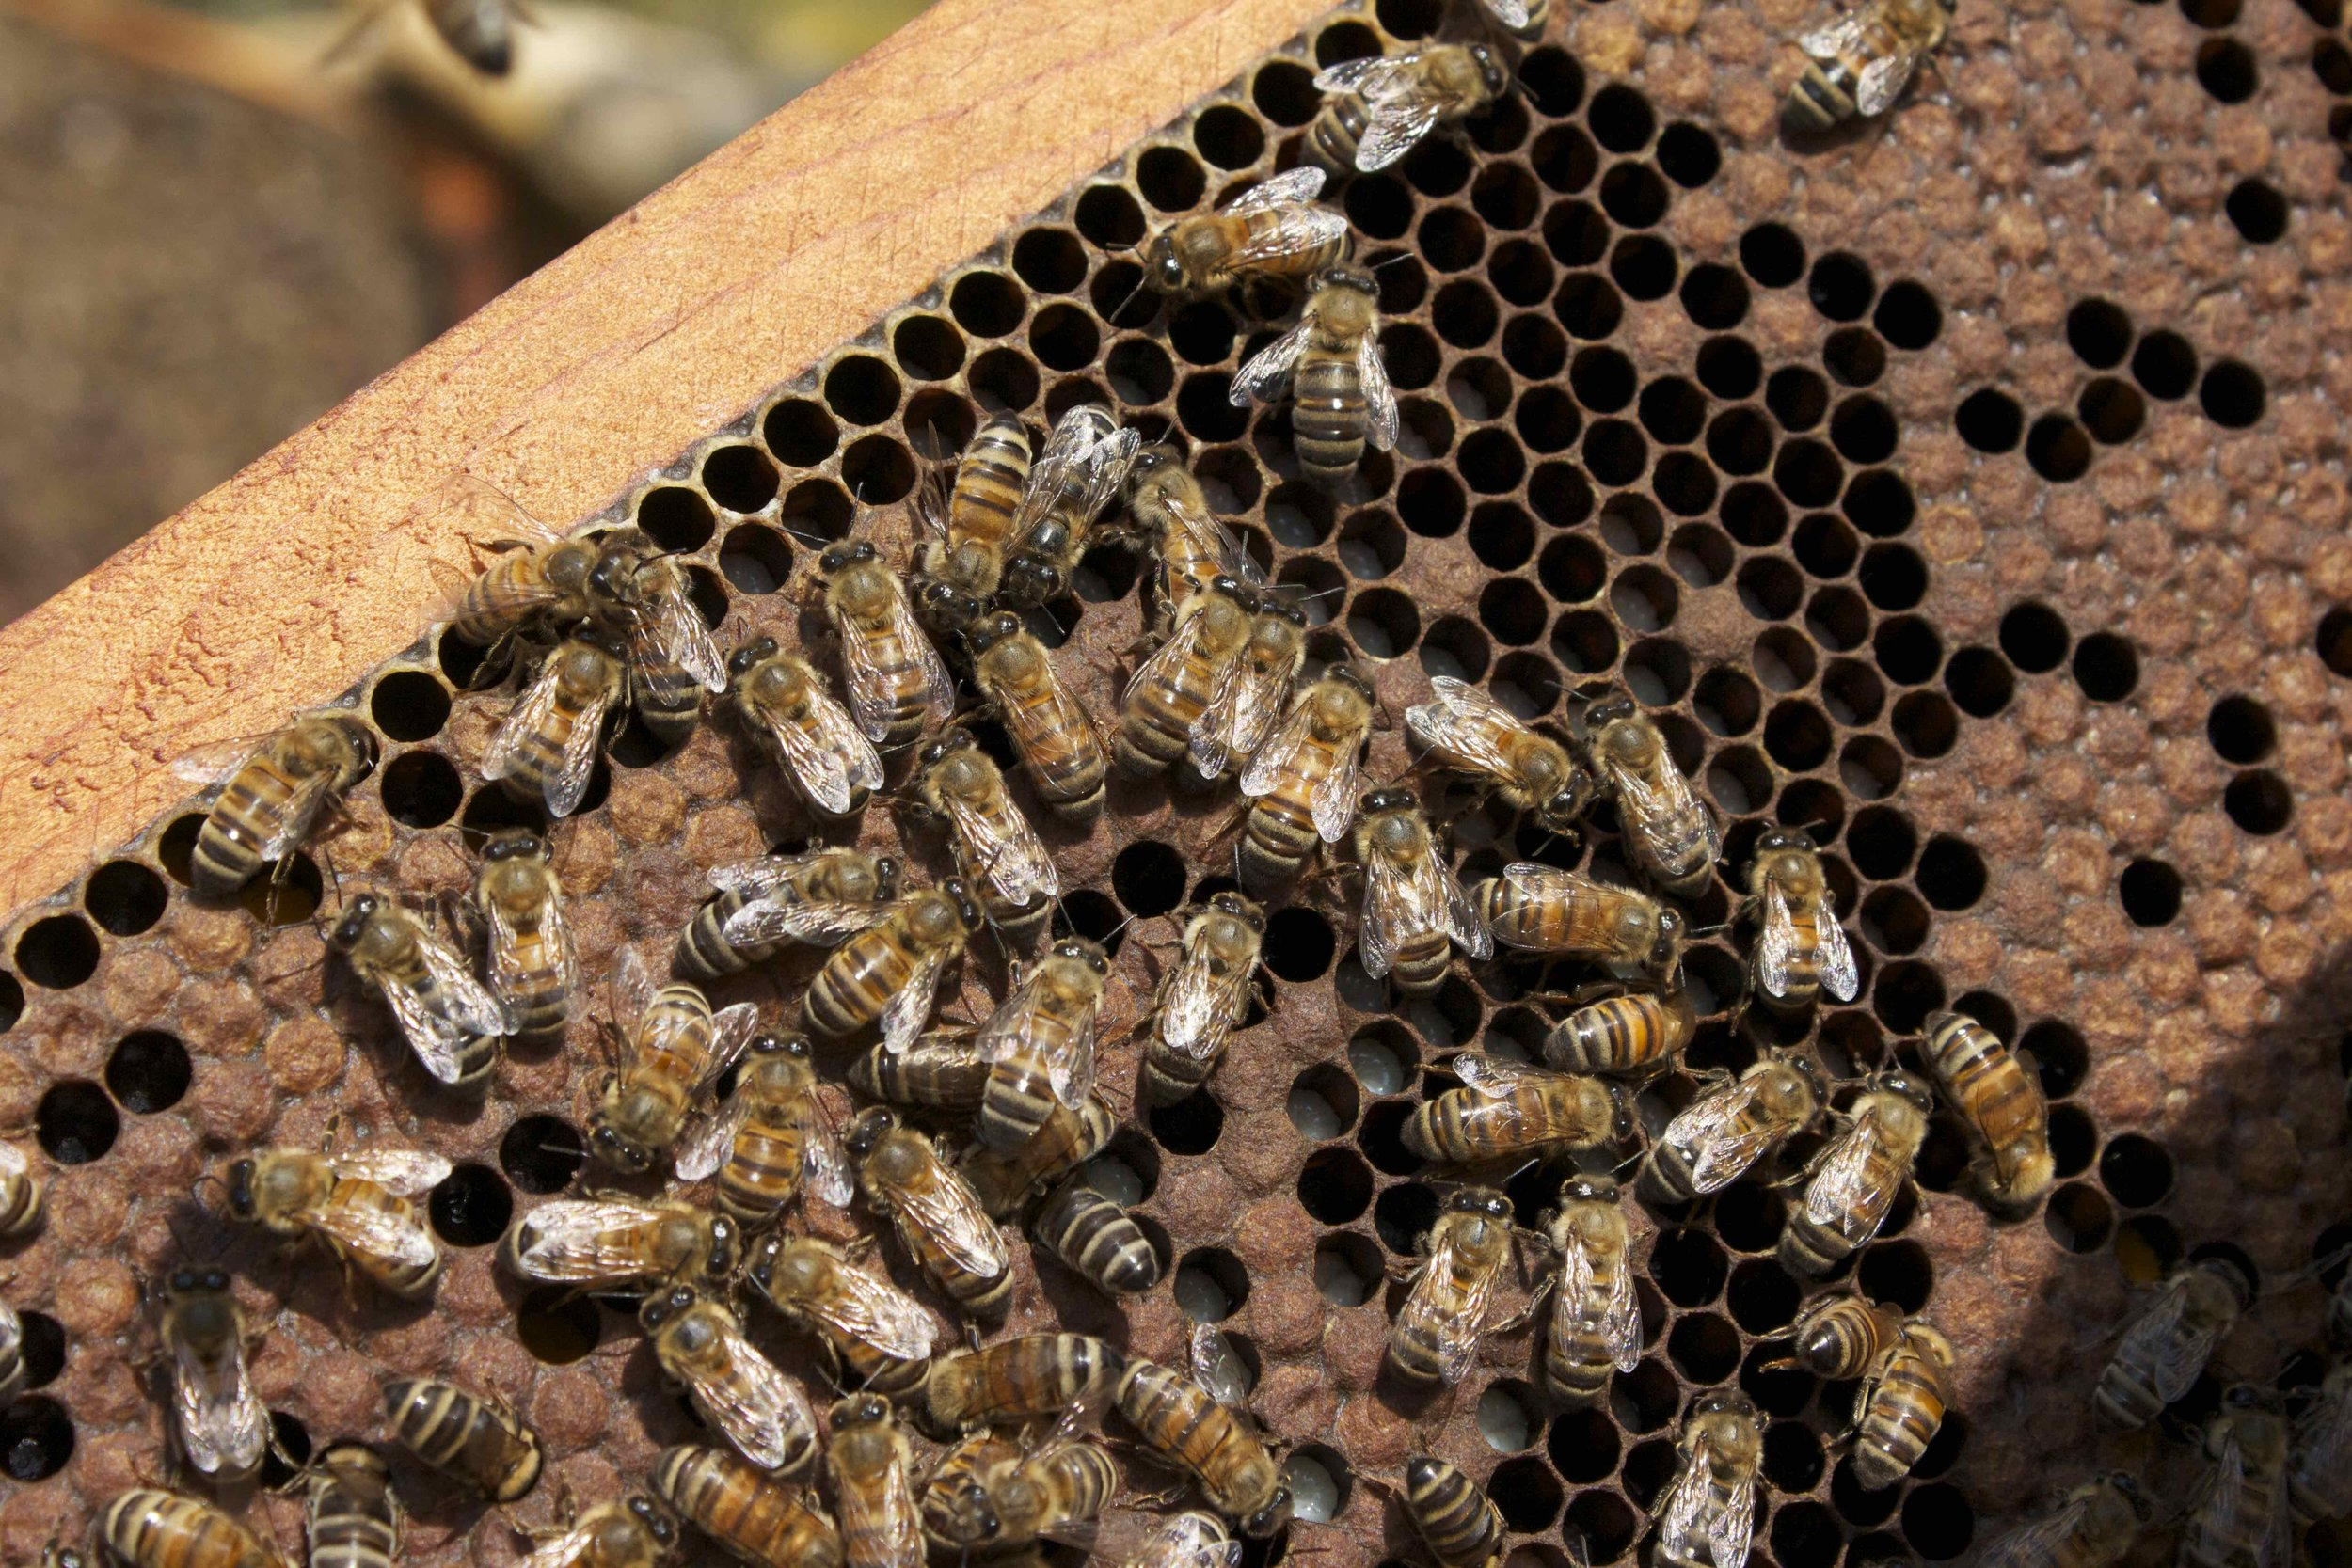 Capped and uncapped brood - you can see the white bee larvae in the uncapped cells. Aren't the adults beautiful?